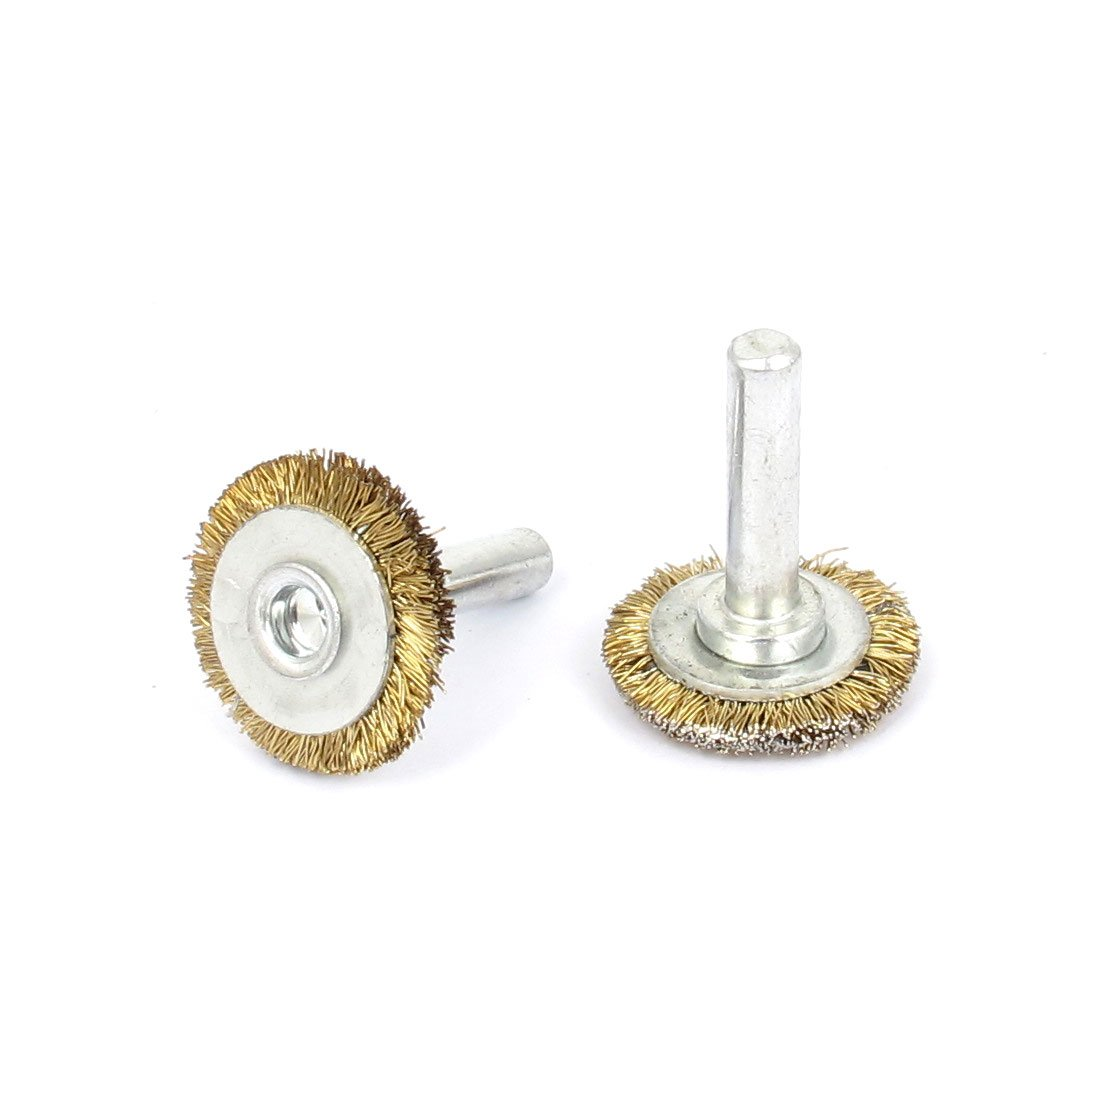 sourcingmap/® 25mm x 6mm Steel Wire Polishing Buffing Wheels Grinding Brushes 2pcs